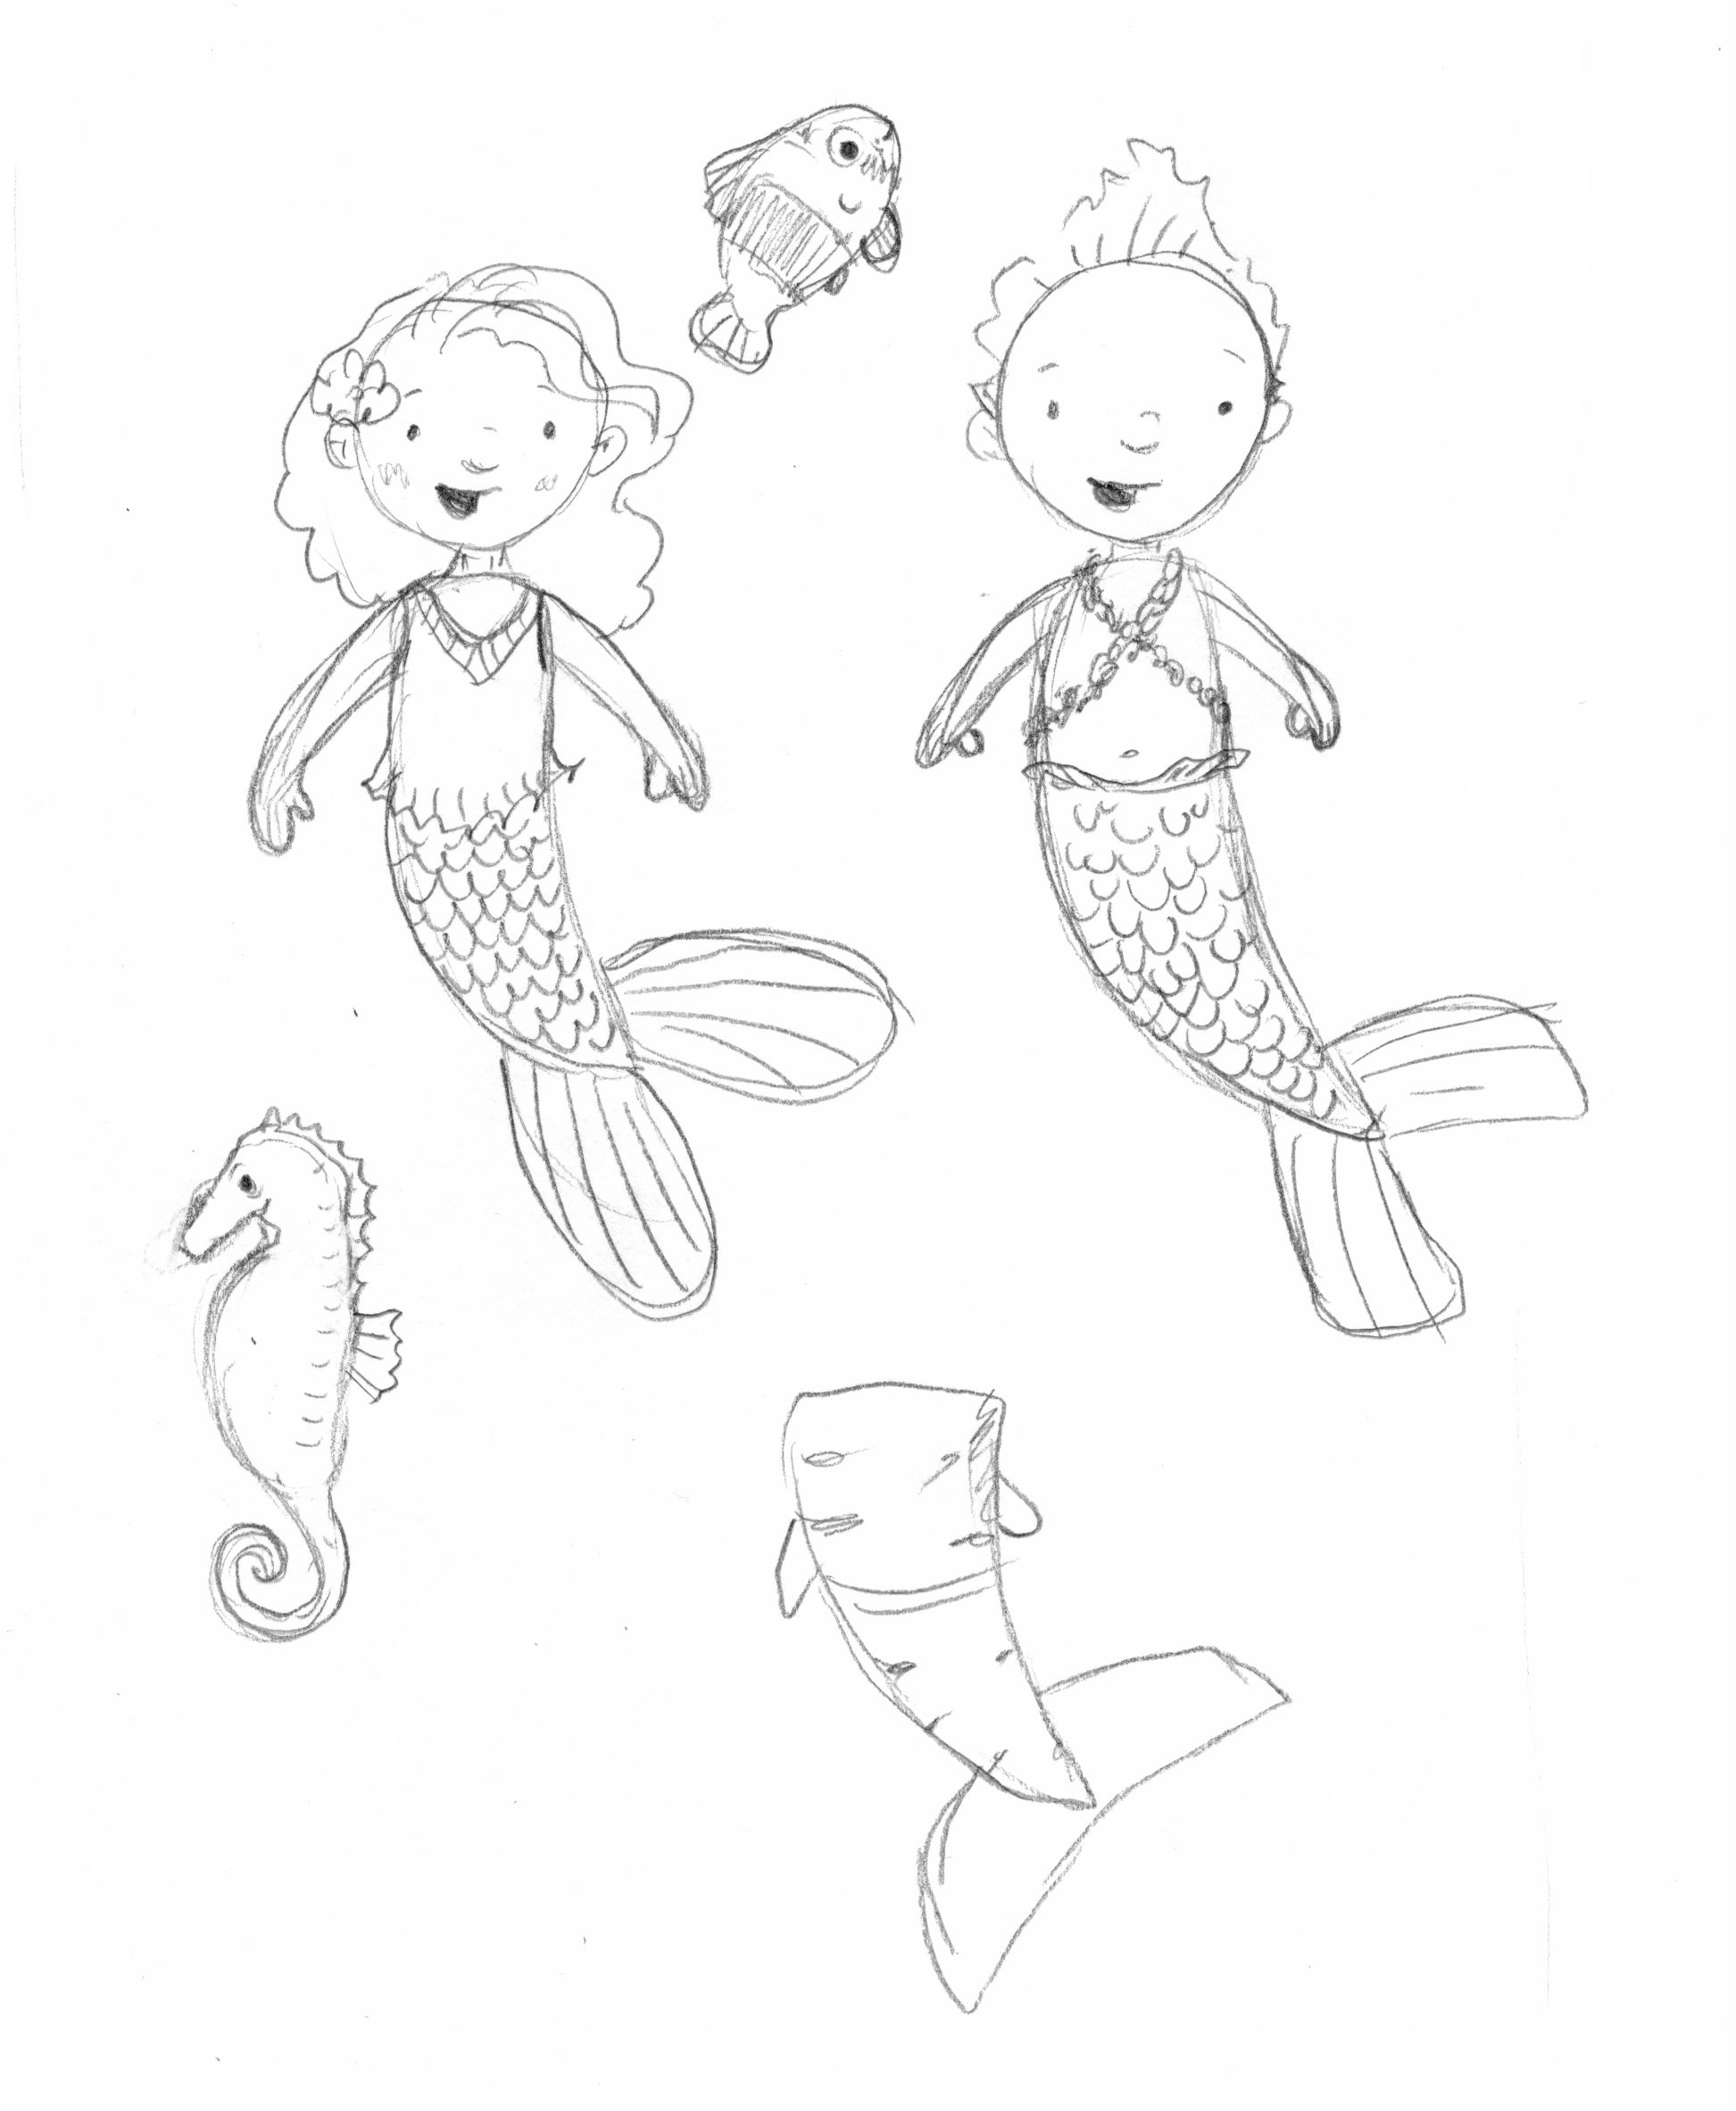 mermaid characters.jpg